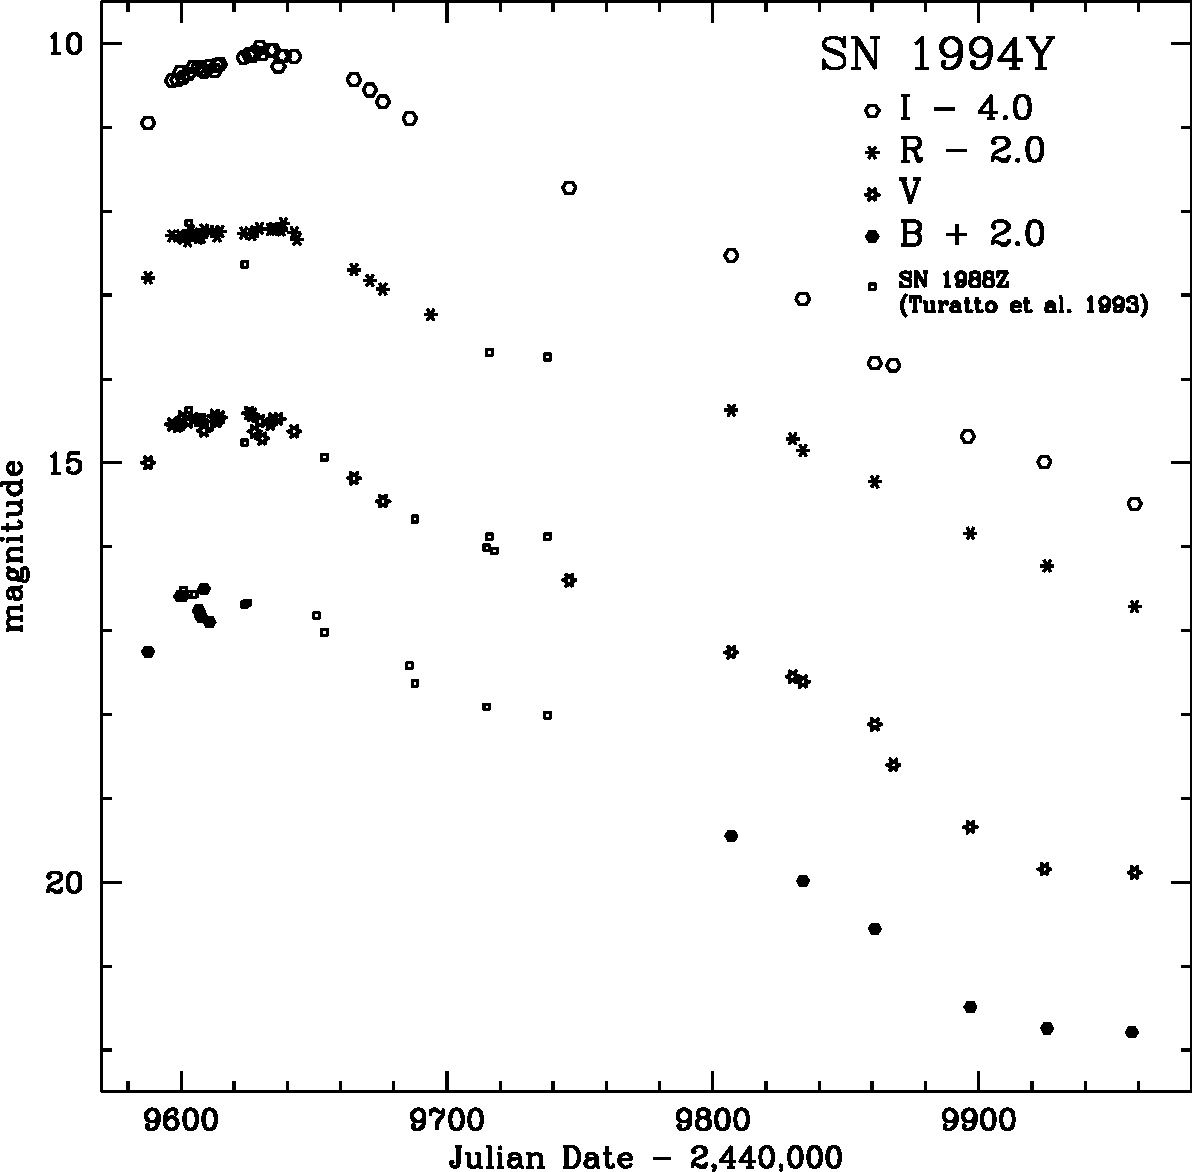 Fig. 14.— BV RI light curves of the Type IIn SN 1994Y. Shown for comparison are the curves for SN 1988Z.